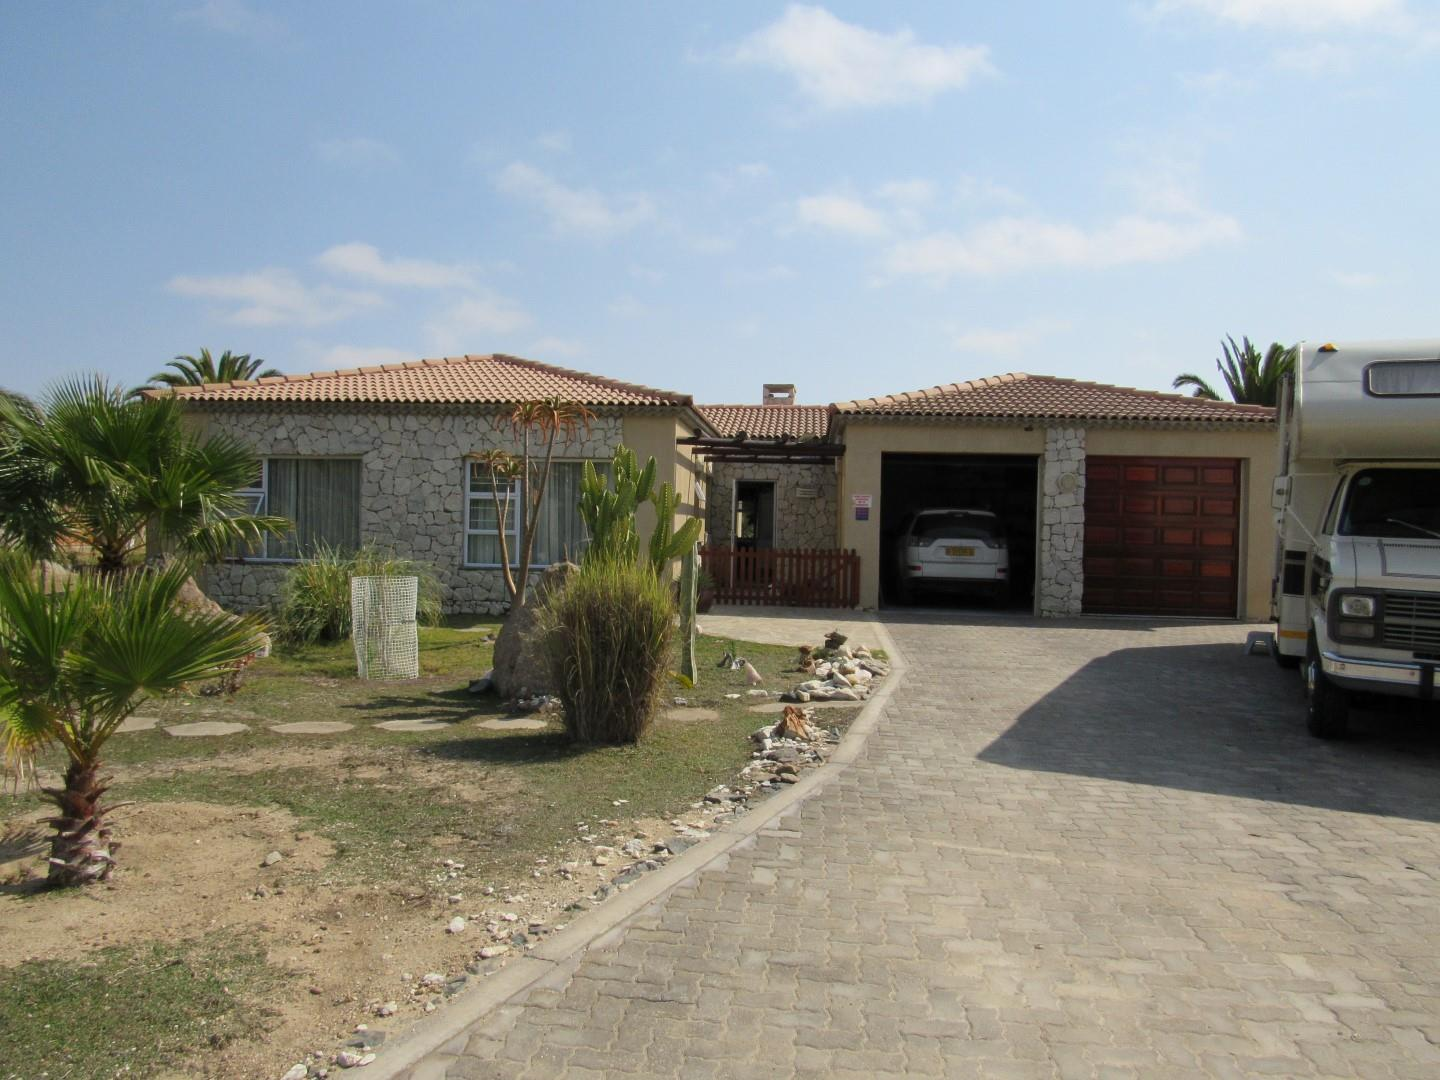 3 Bedroom House for Sale in Rossmund Golf Estate, Swakopmund - Erongo